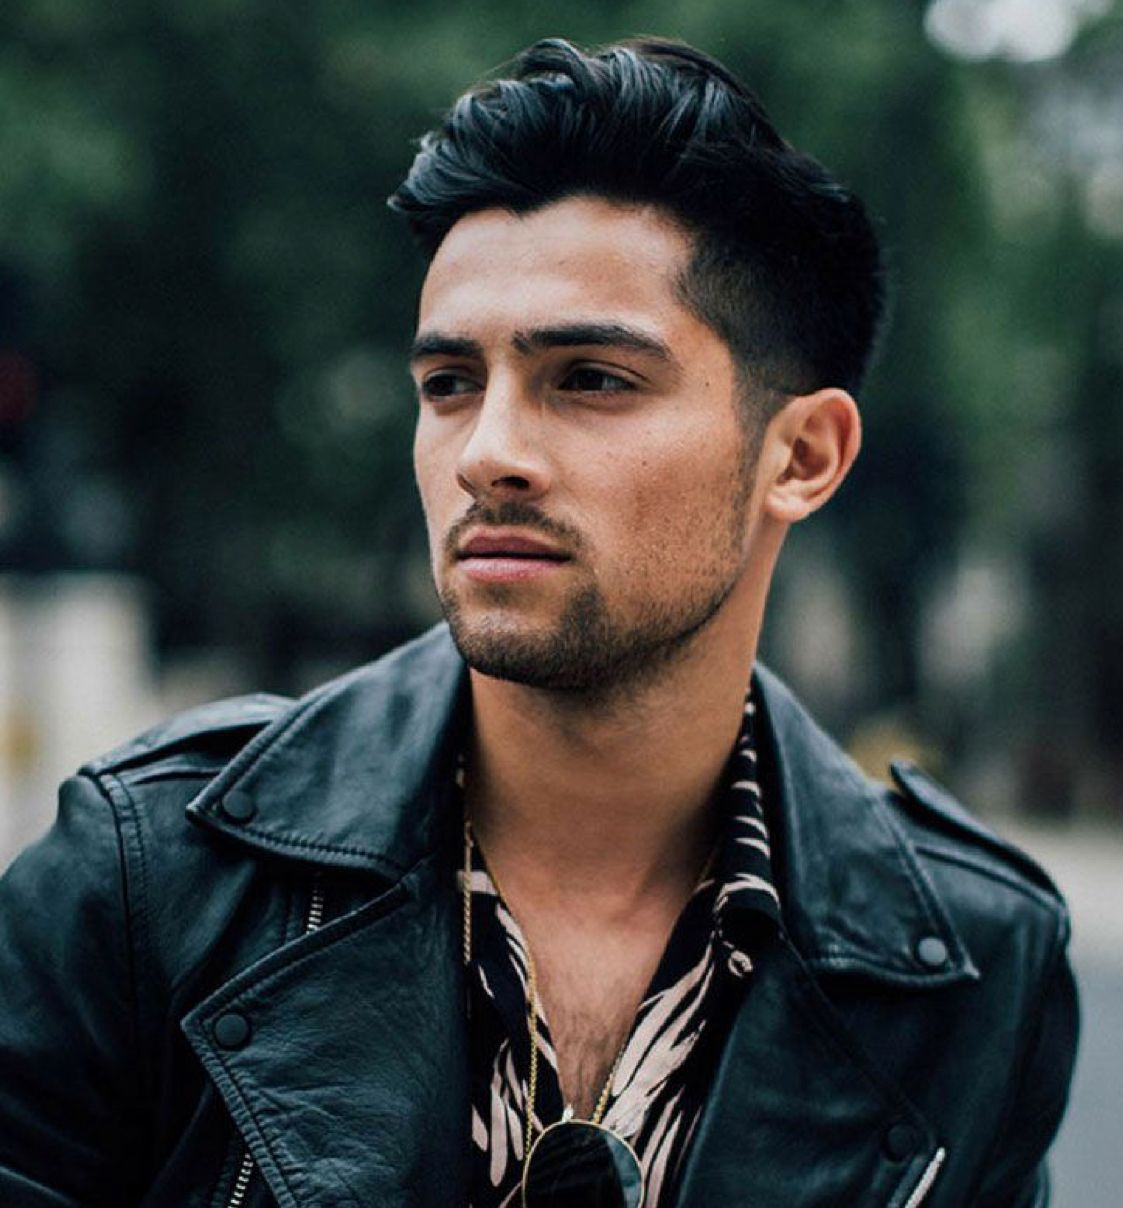 Pin by Nero on Men's Hair styles | Mens hairstyles, Cool ...